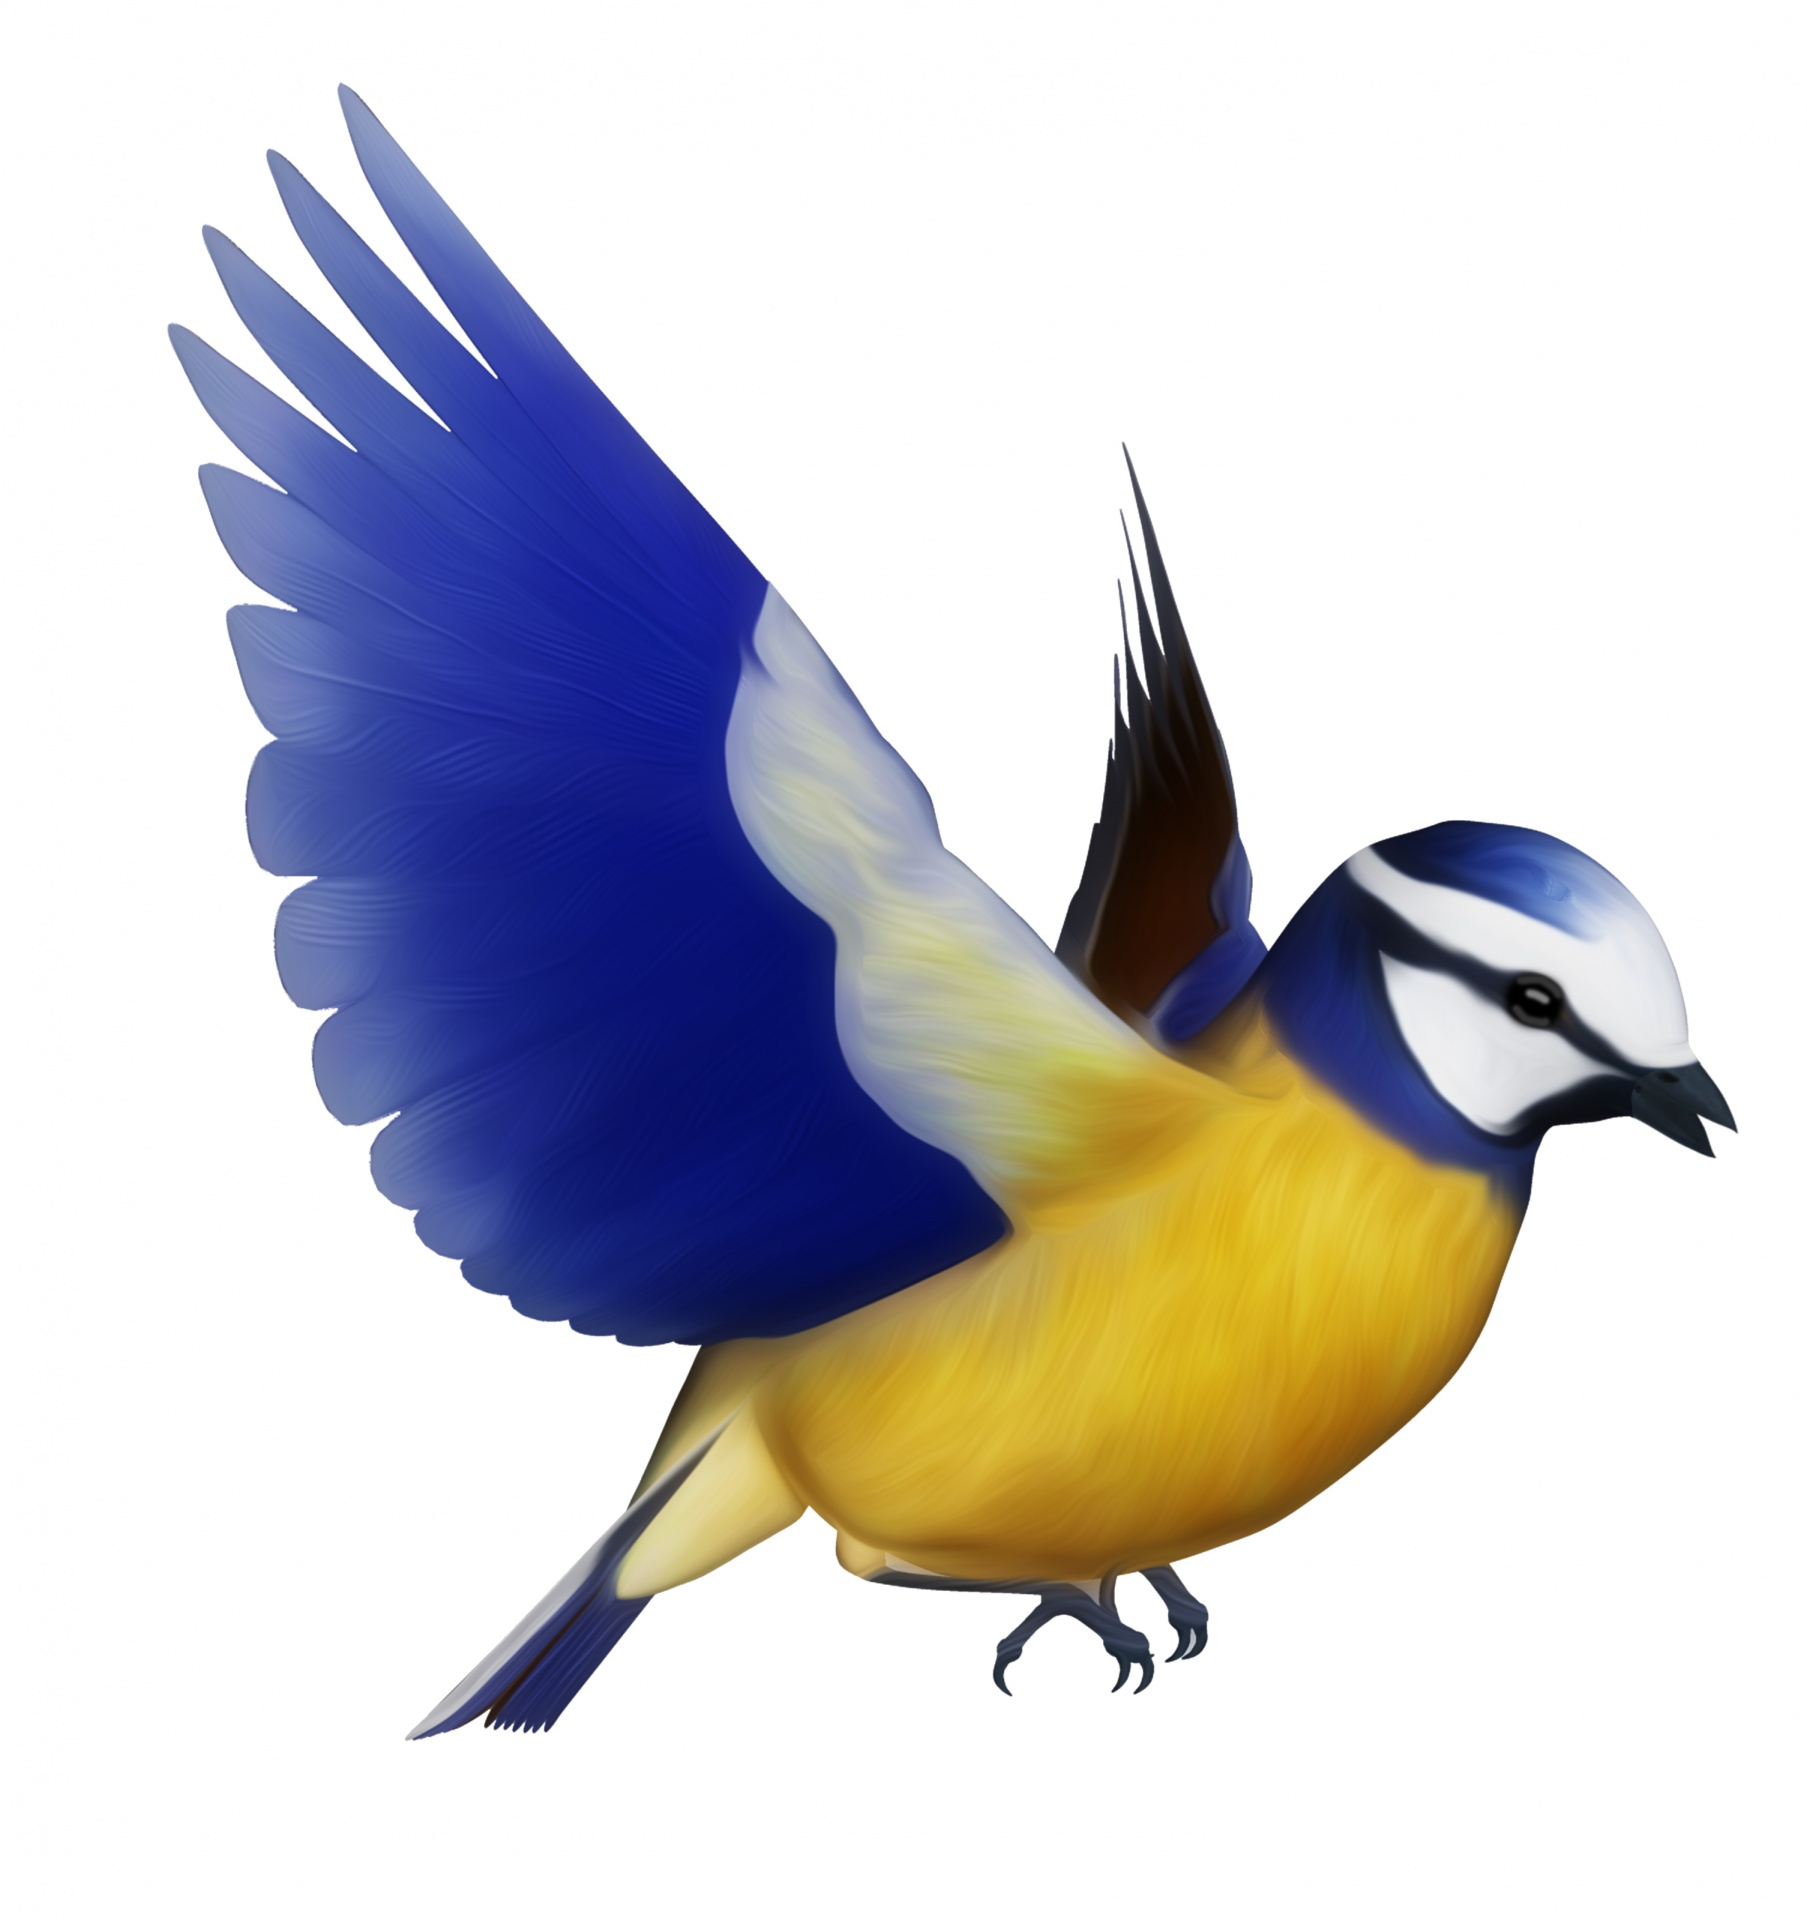 Blue Tit Bird Clipart Free Stock Photo.